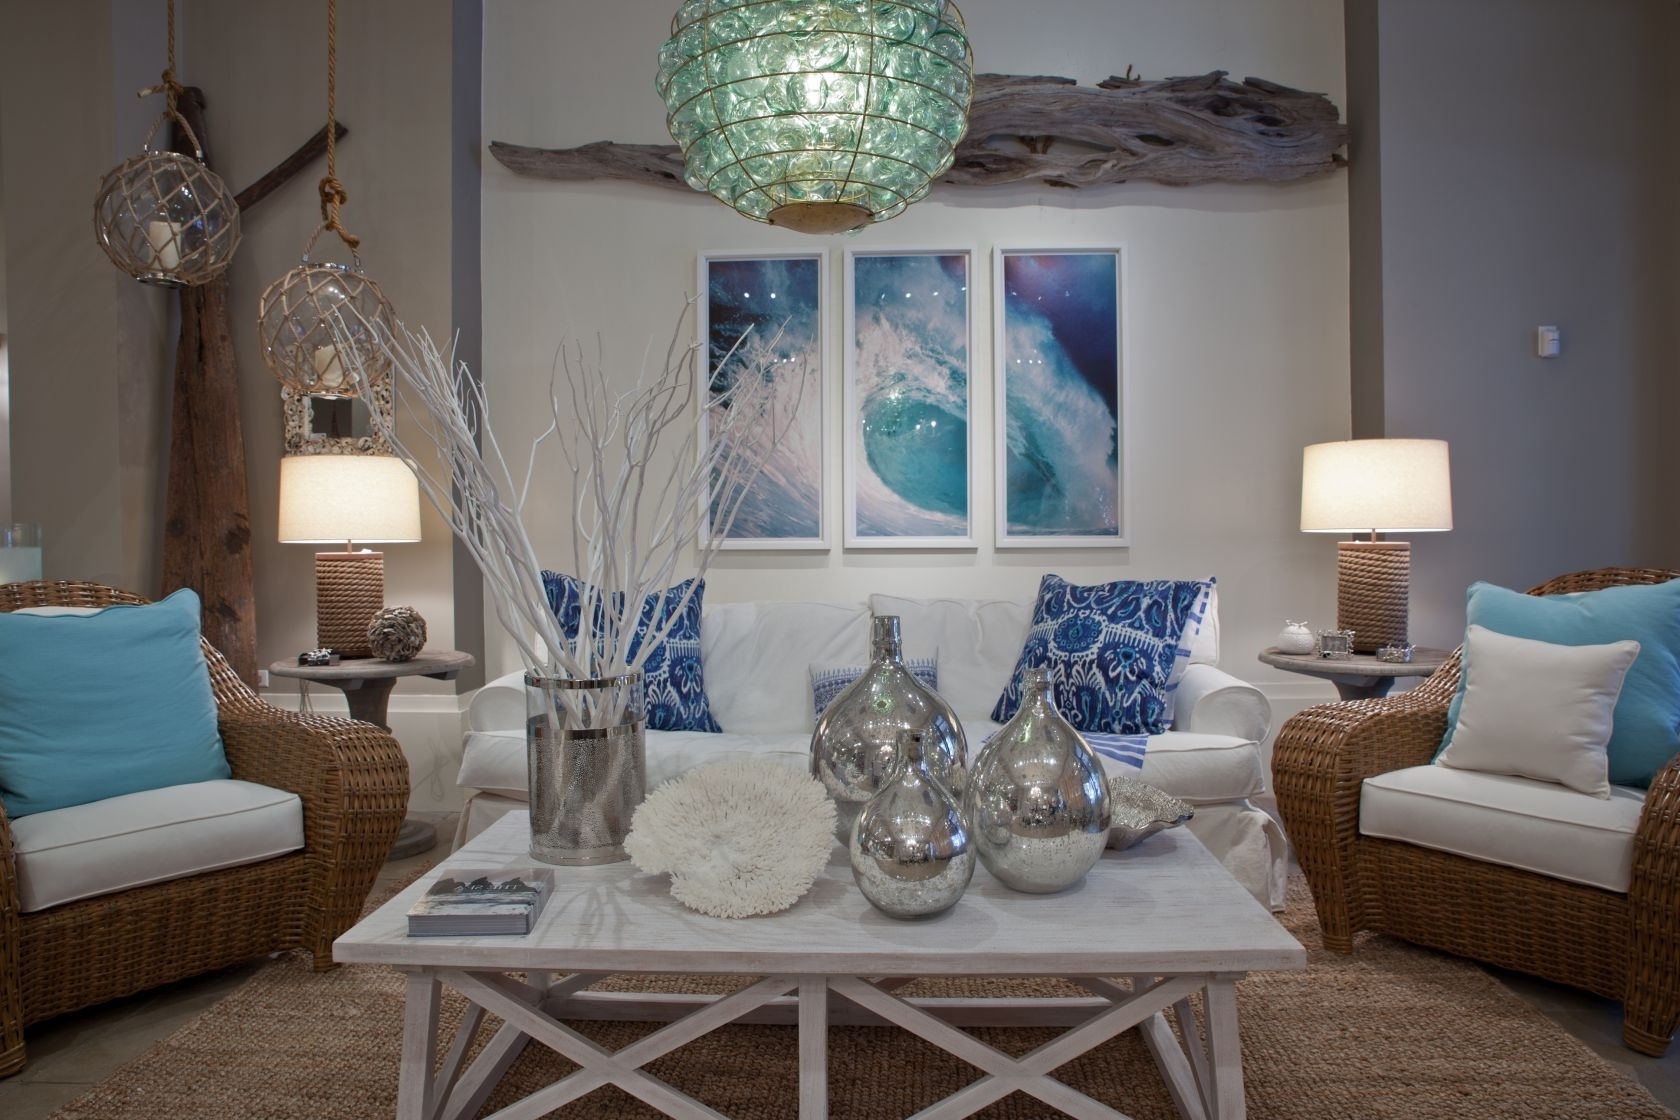 Turquoise Orb Chandeliers Throughout Most Up To Date Interior: Mesmerizing Crystal Glass Orb Chandelier For Home Lighting (View 14 of 20)